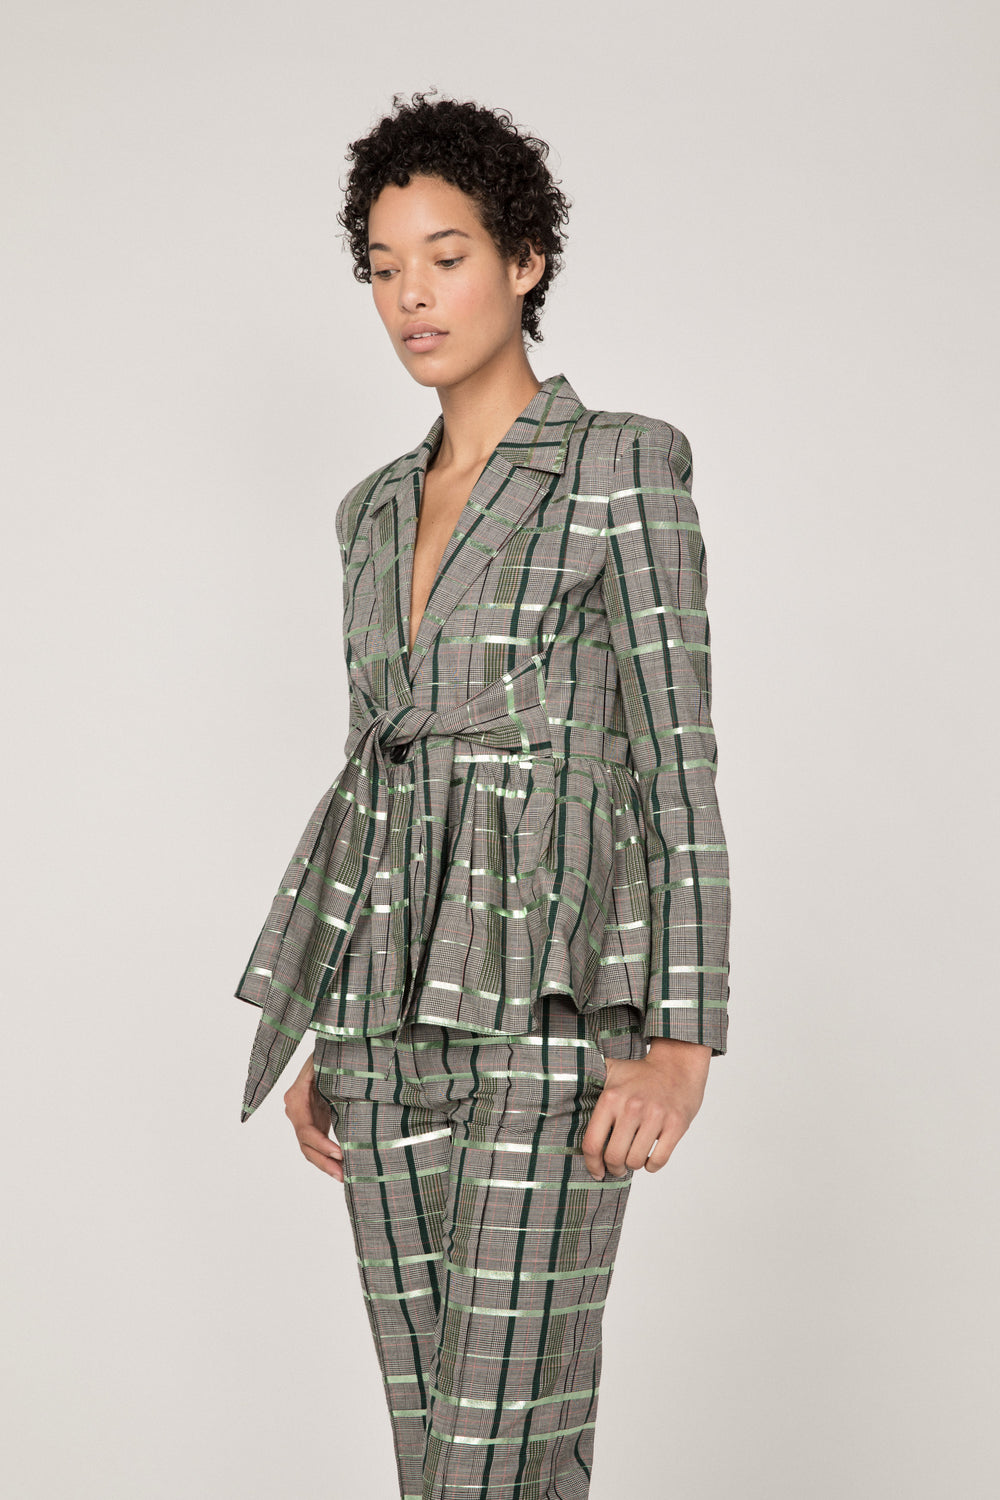 Rosie Assoulin Fall 2019 Tie-Front Peplum Blazer. Flared blazer. Tie-front detail. Buttons along cuff. Finished with metallic foil. Green plaid. 98% Wool, 2% Polyester. Sizes 0 - 12.